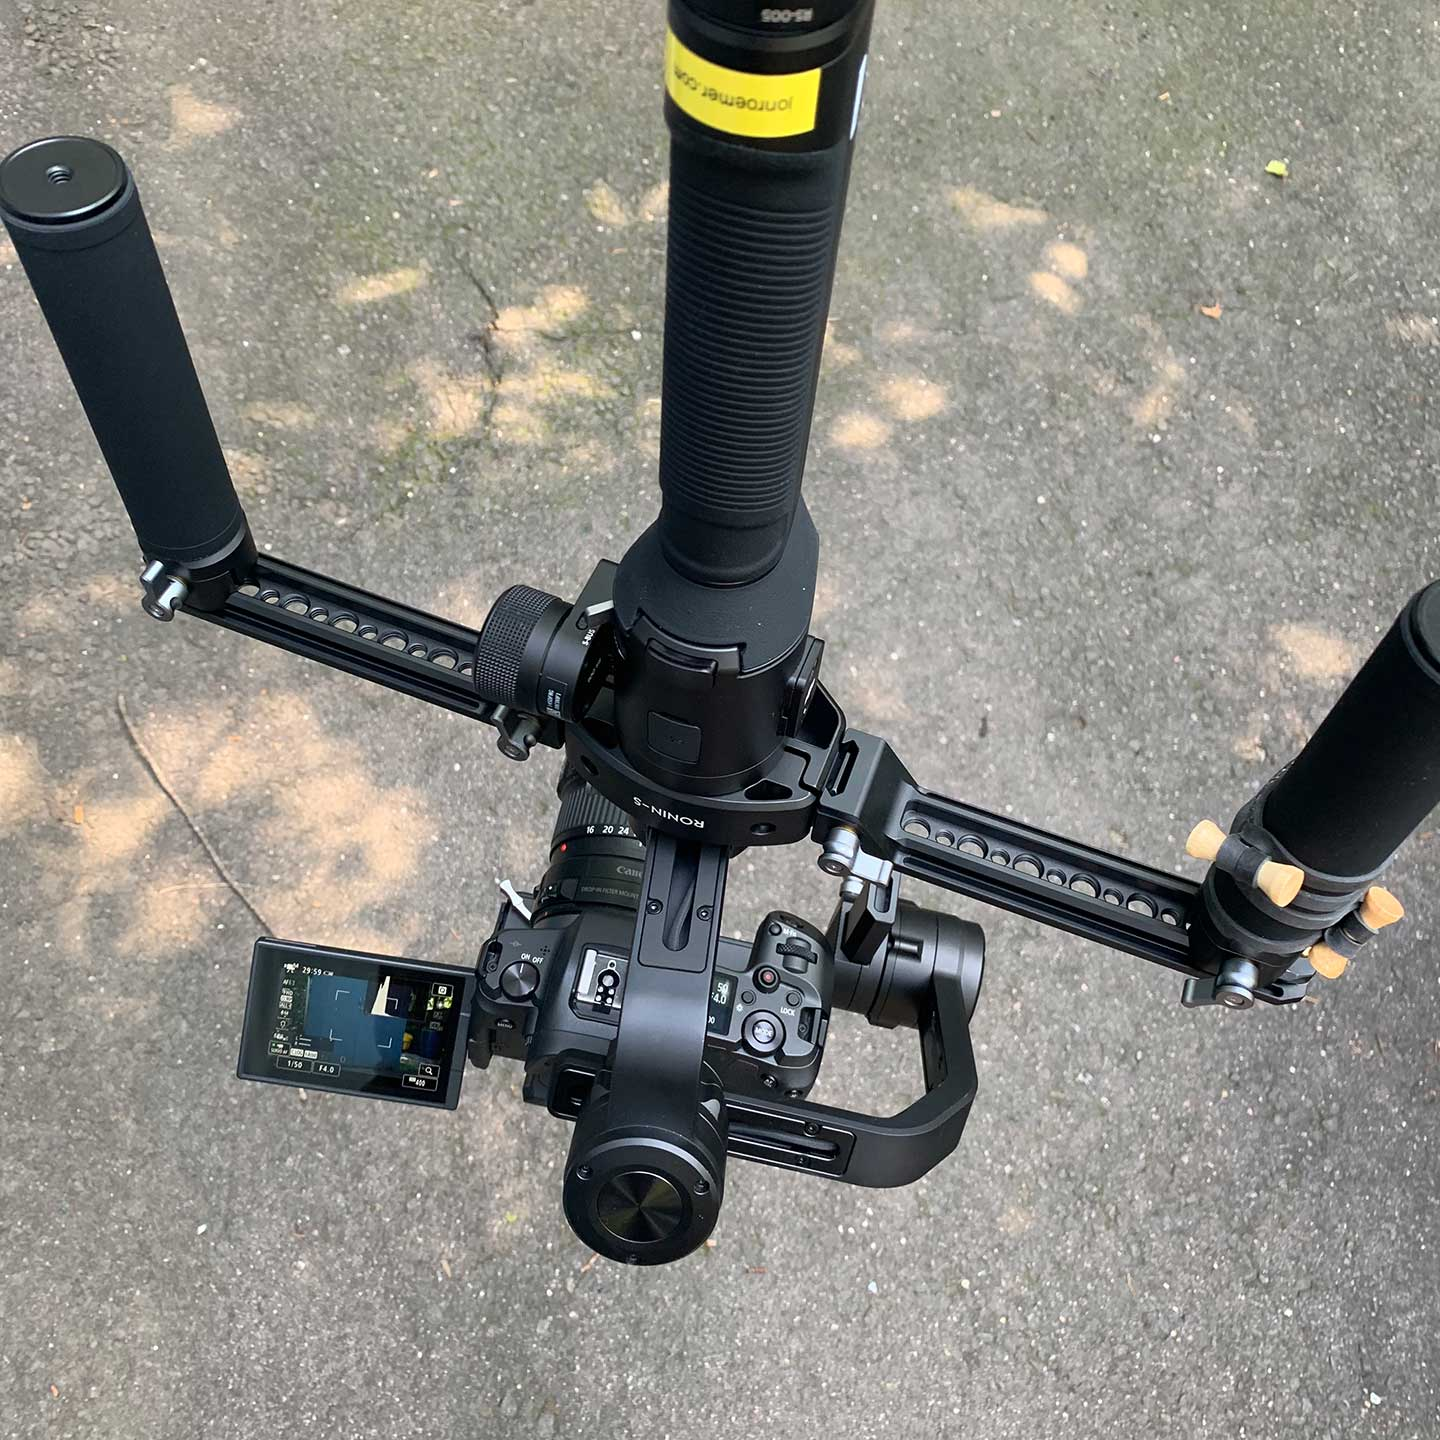 dji-ronin-s-grip-handle-underslung